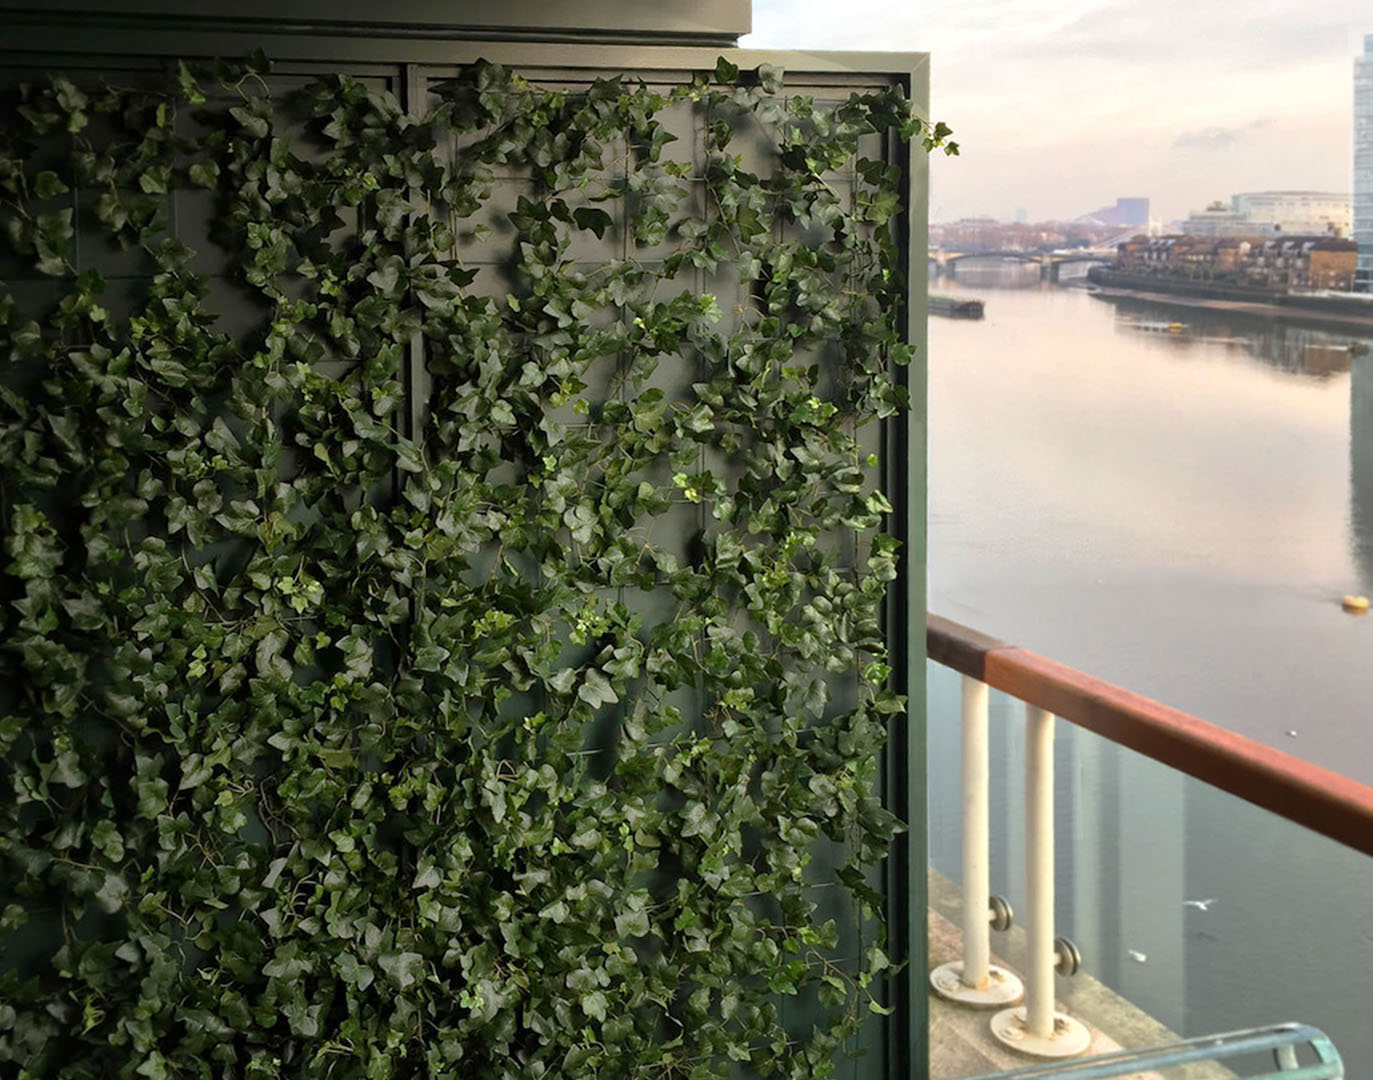 435 fake landscapes ivy on mesh with nice view SW10